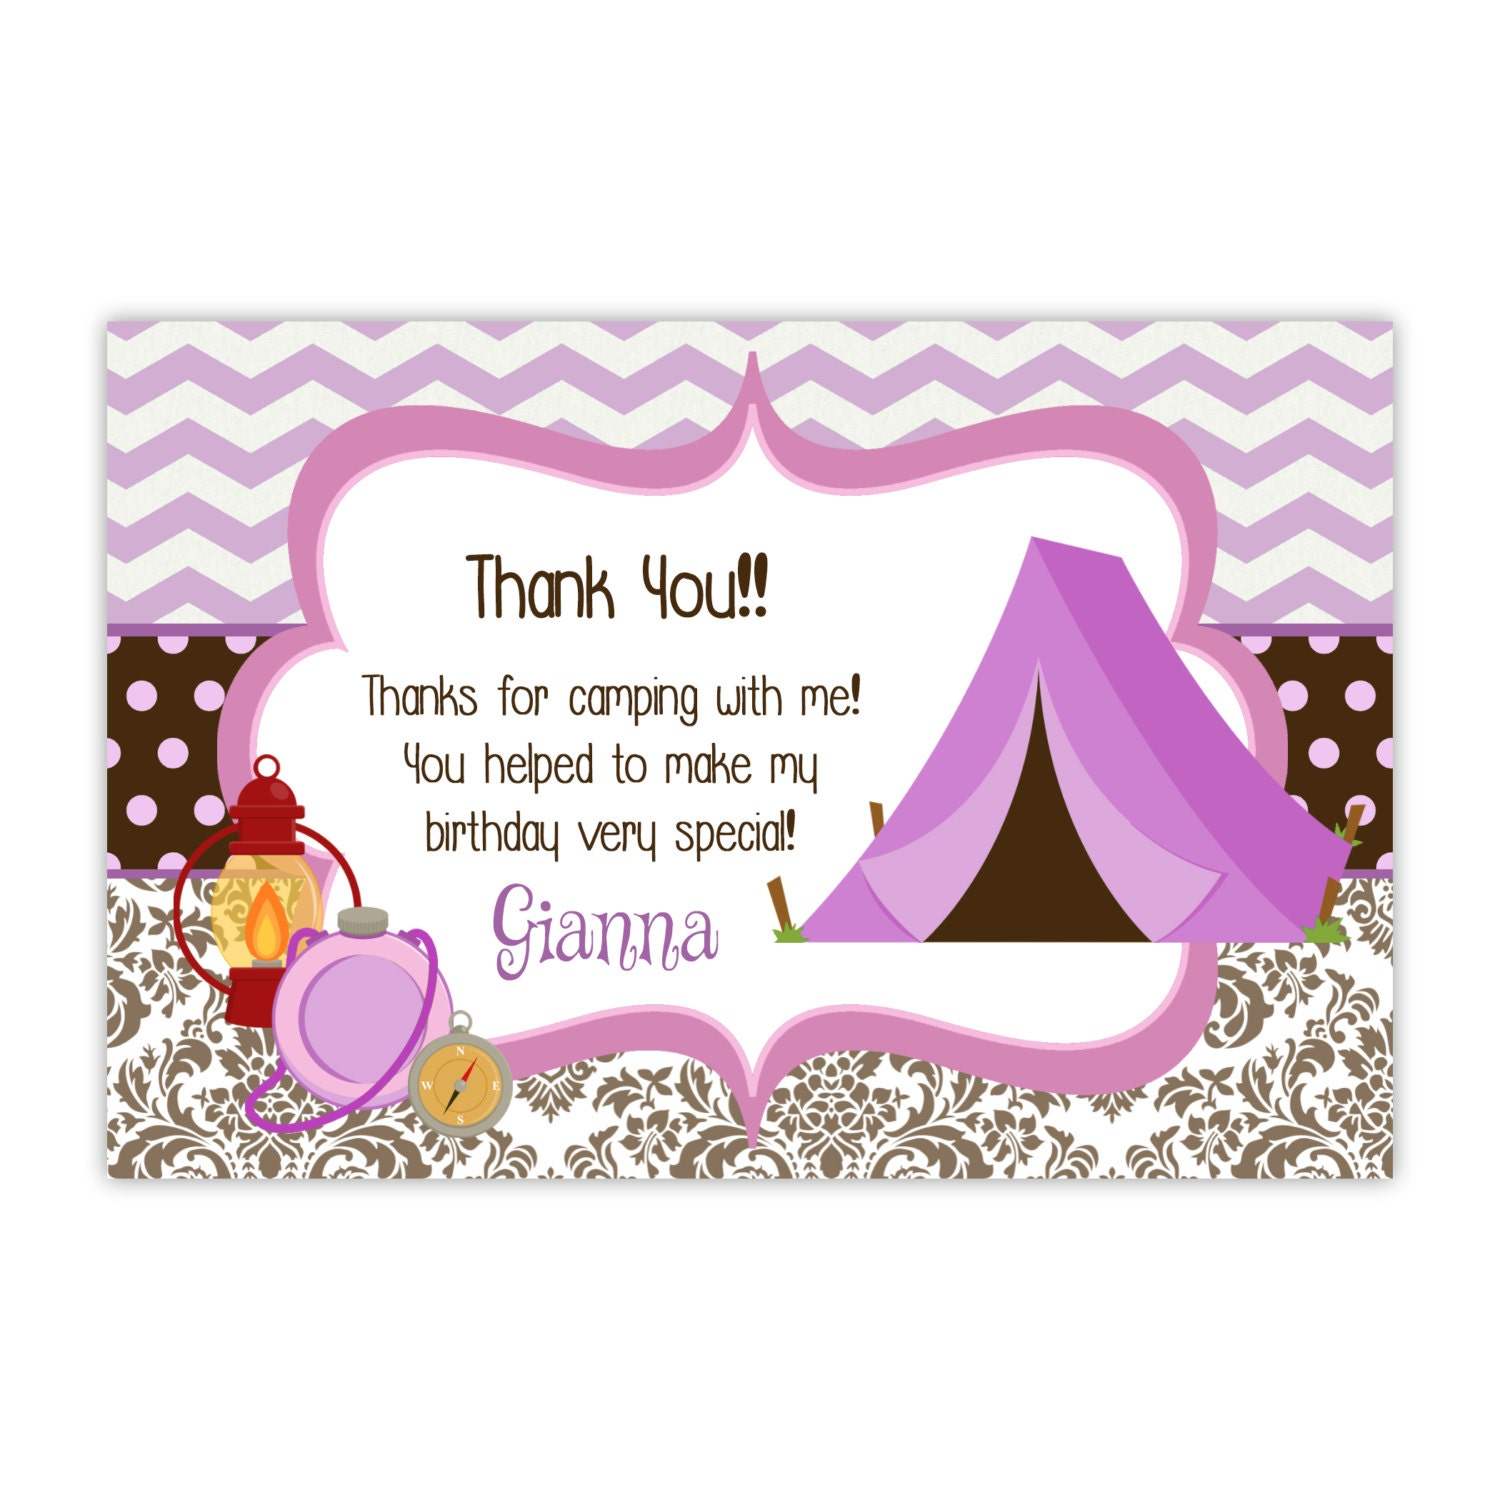 Camping Thank You Card Pink Purple Chevron Brown Damask